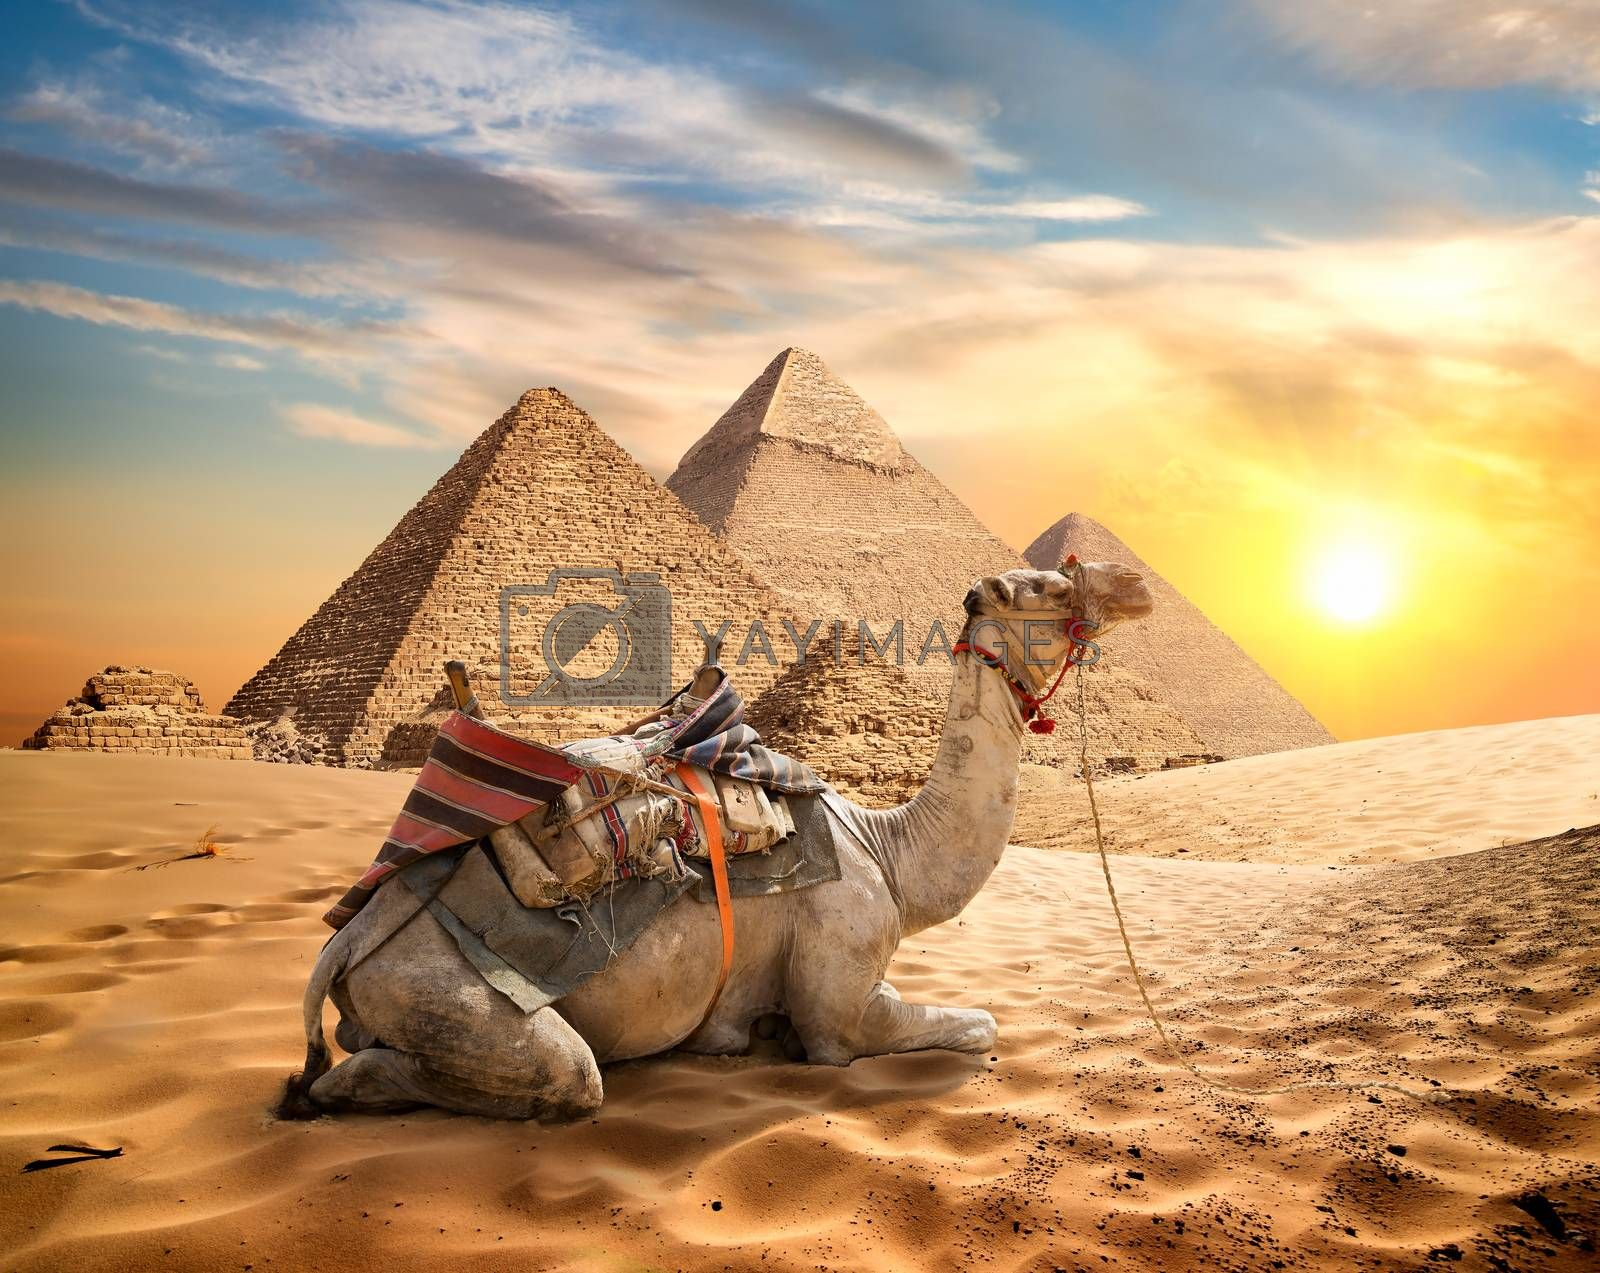 Camel and desert by Givaga